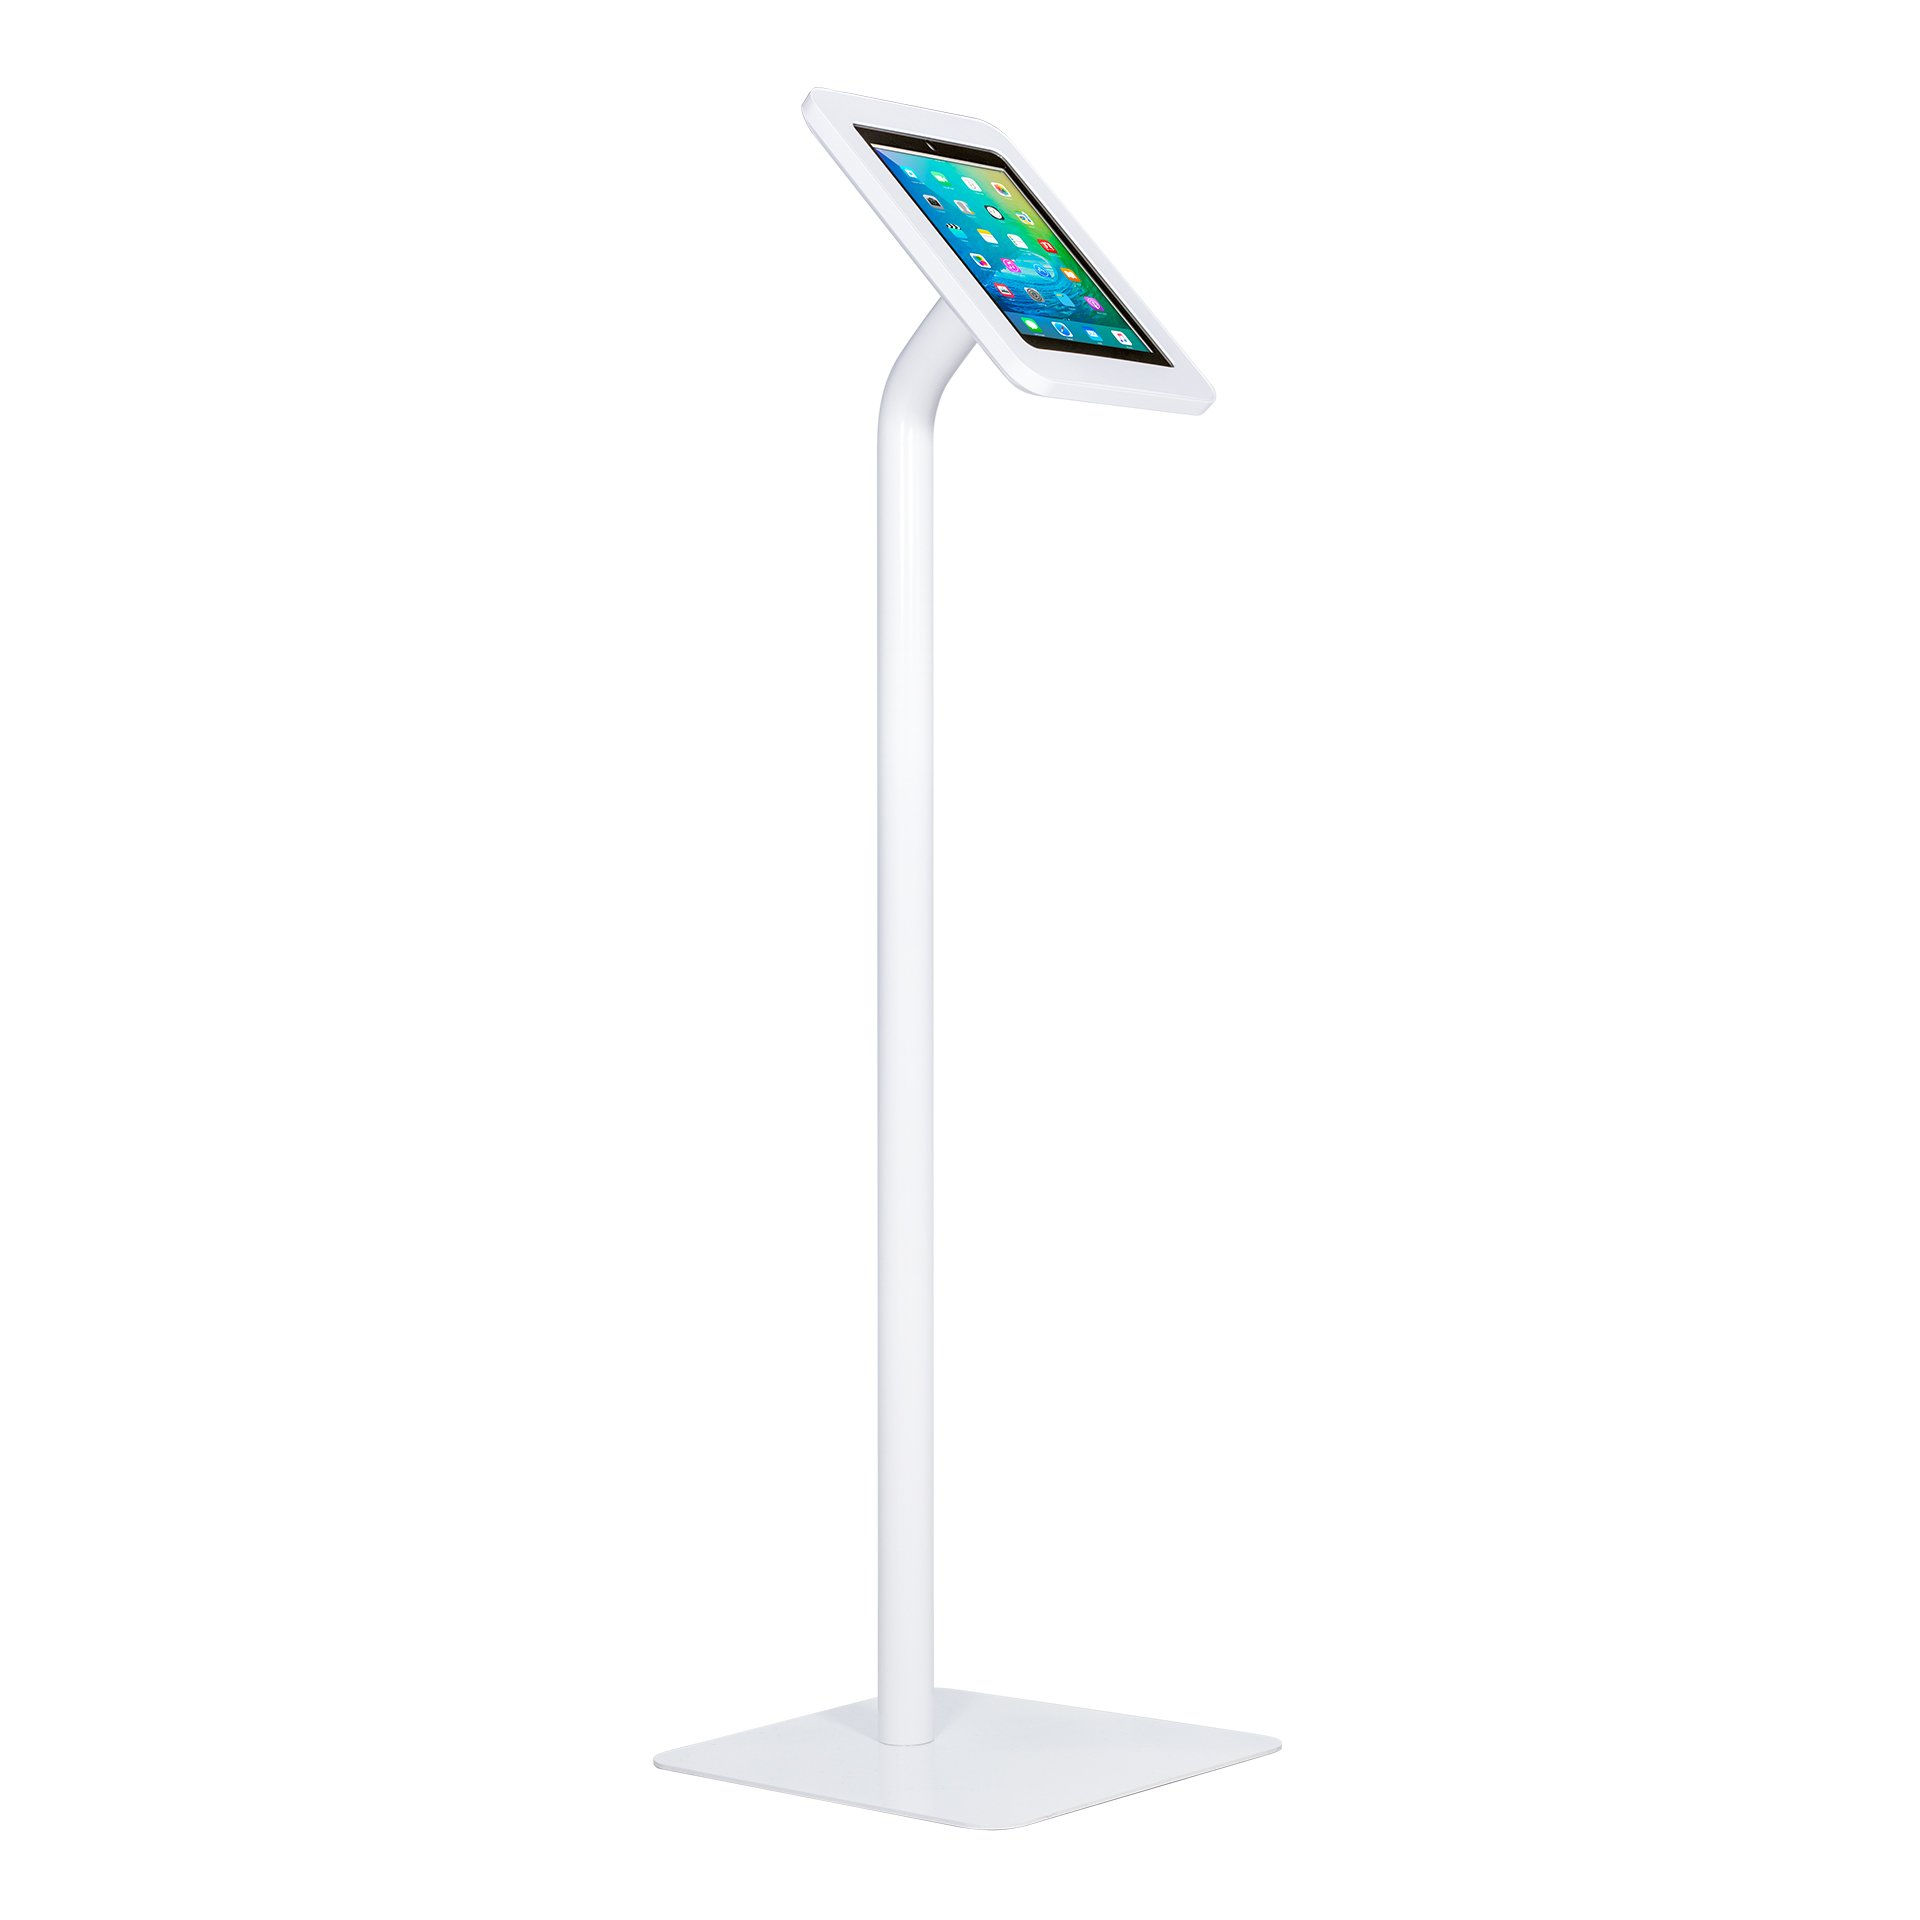 The Joy Factory Elevate II Floor Stand Retail Kiosk for iPad 9.7 (2017) and iPad Air (KAA101W)